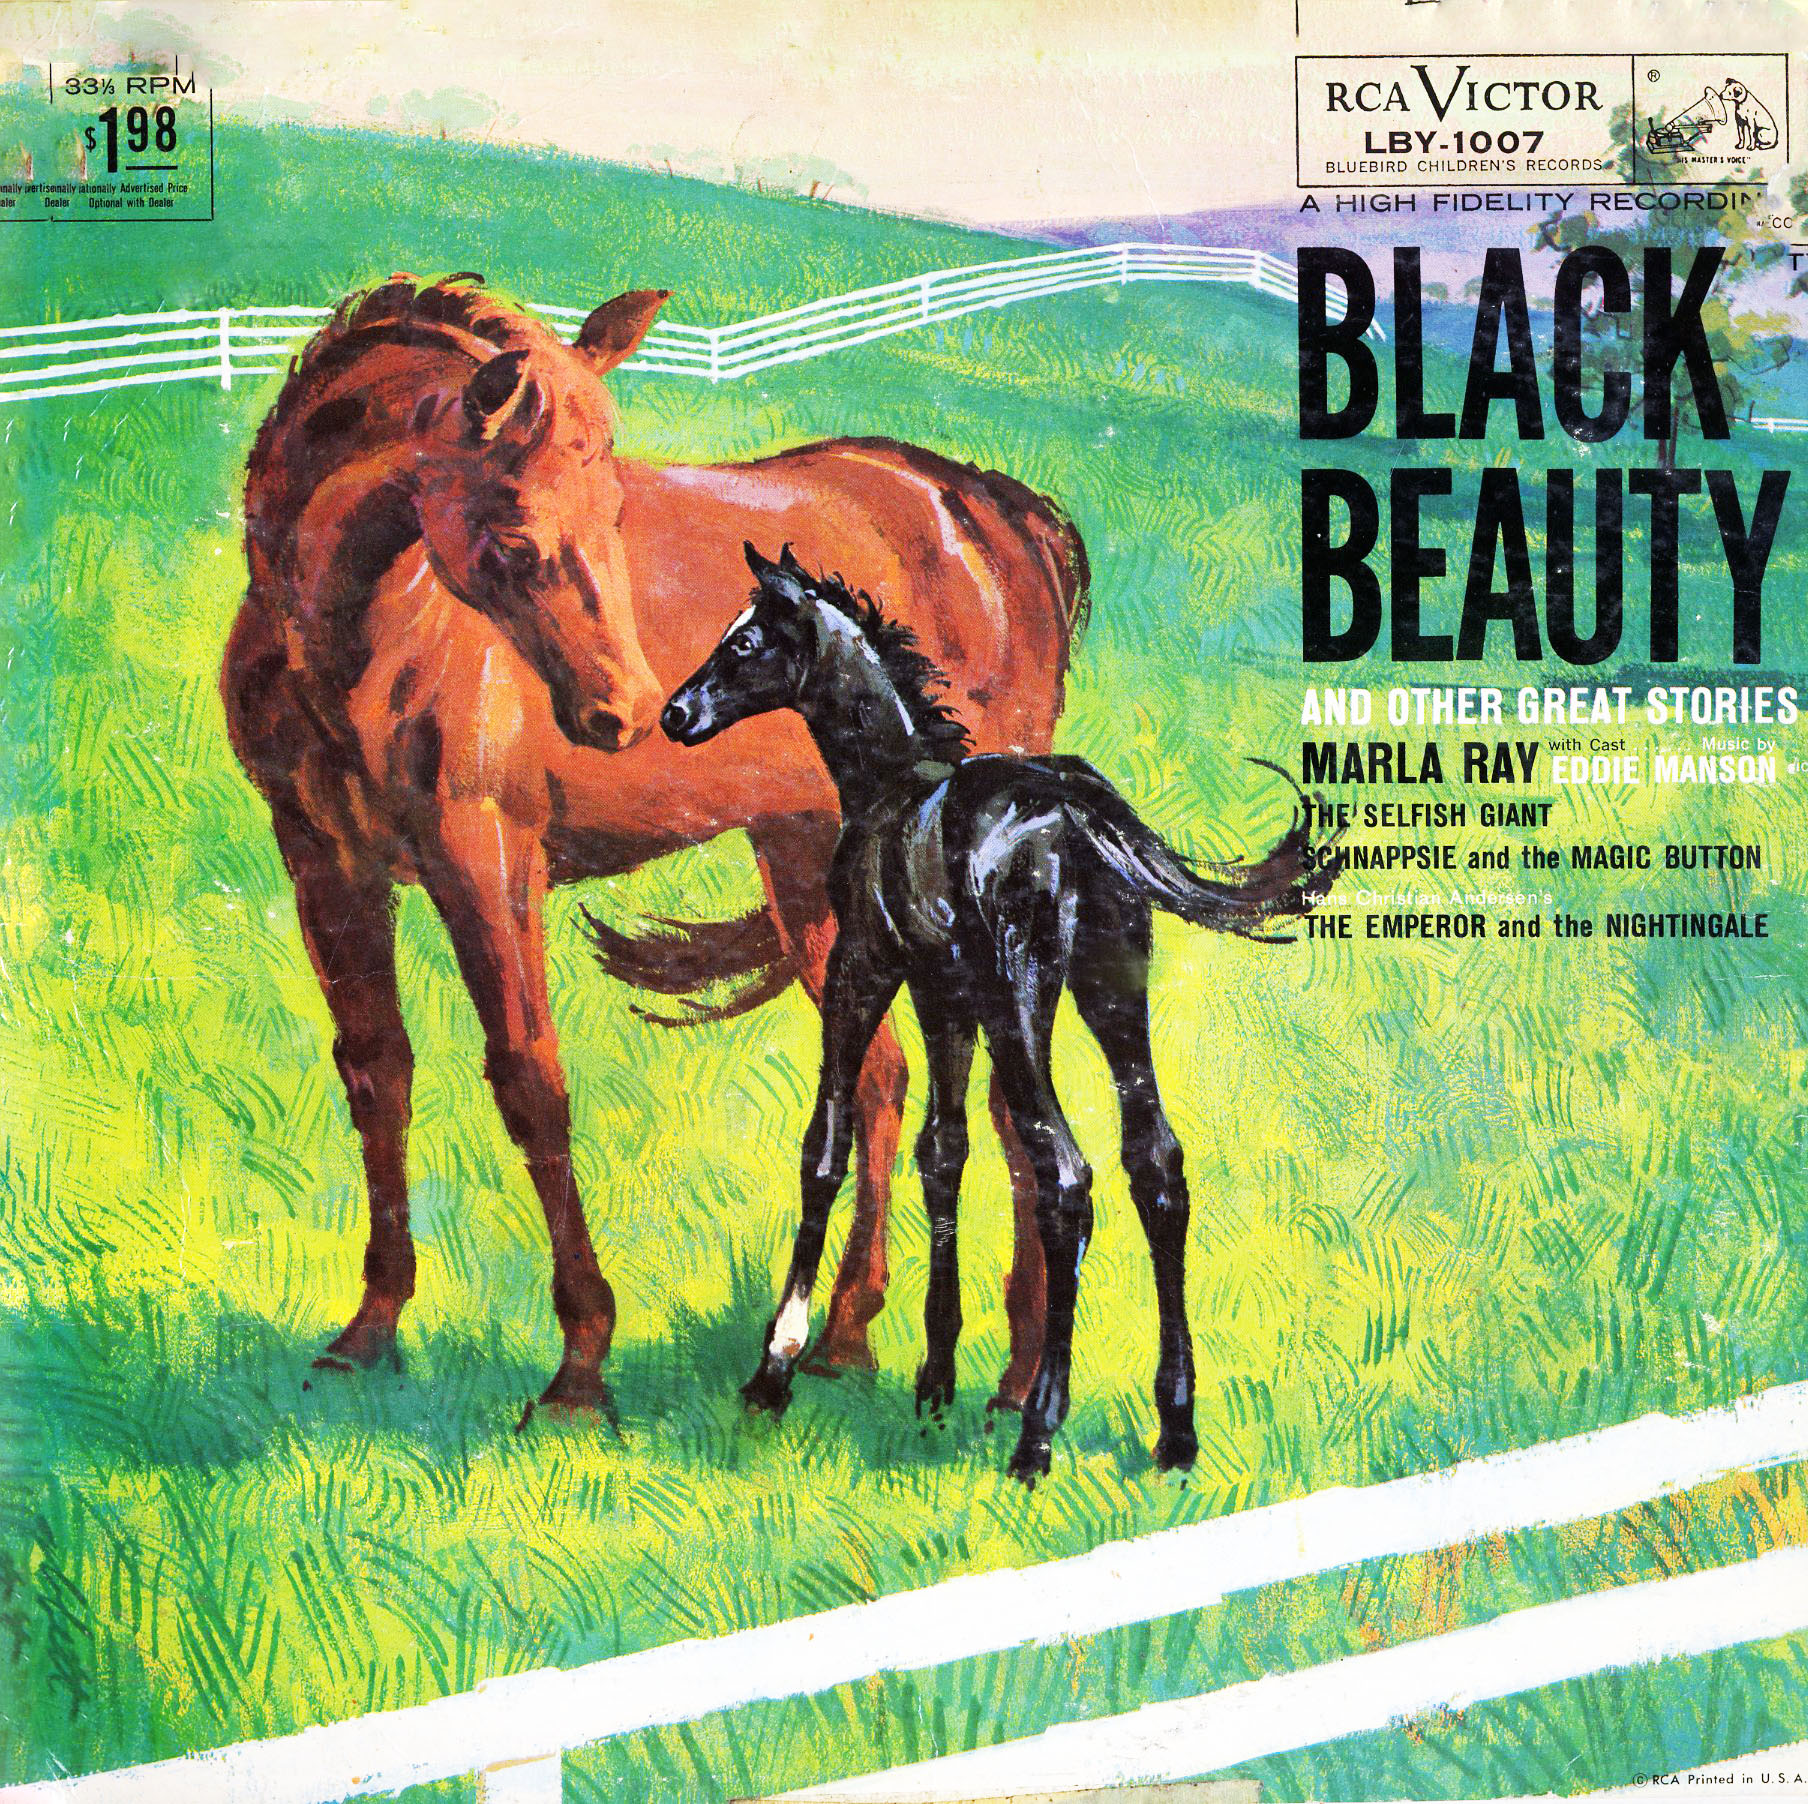 LBY1007 - Black Beauty on CD